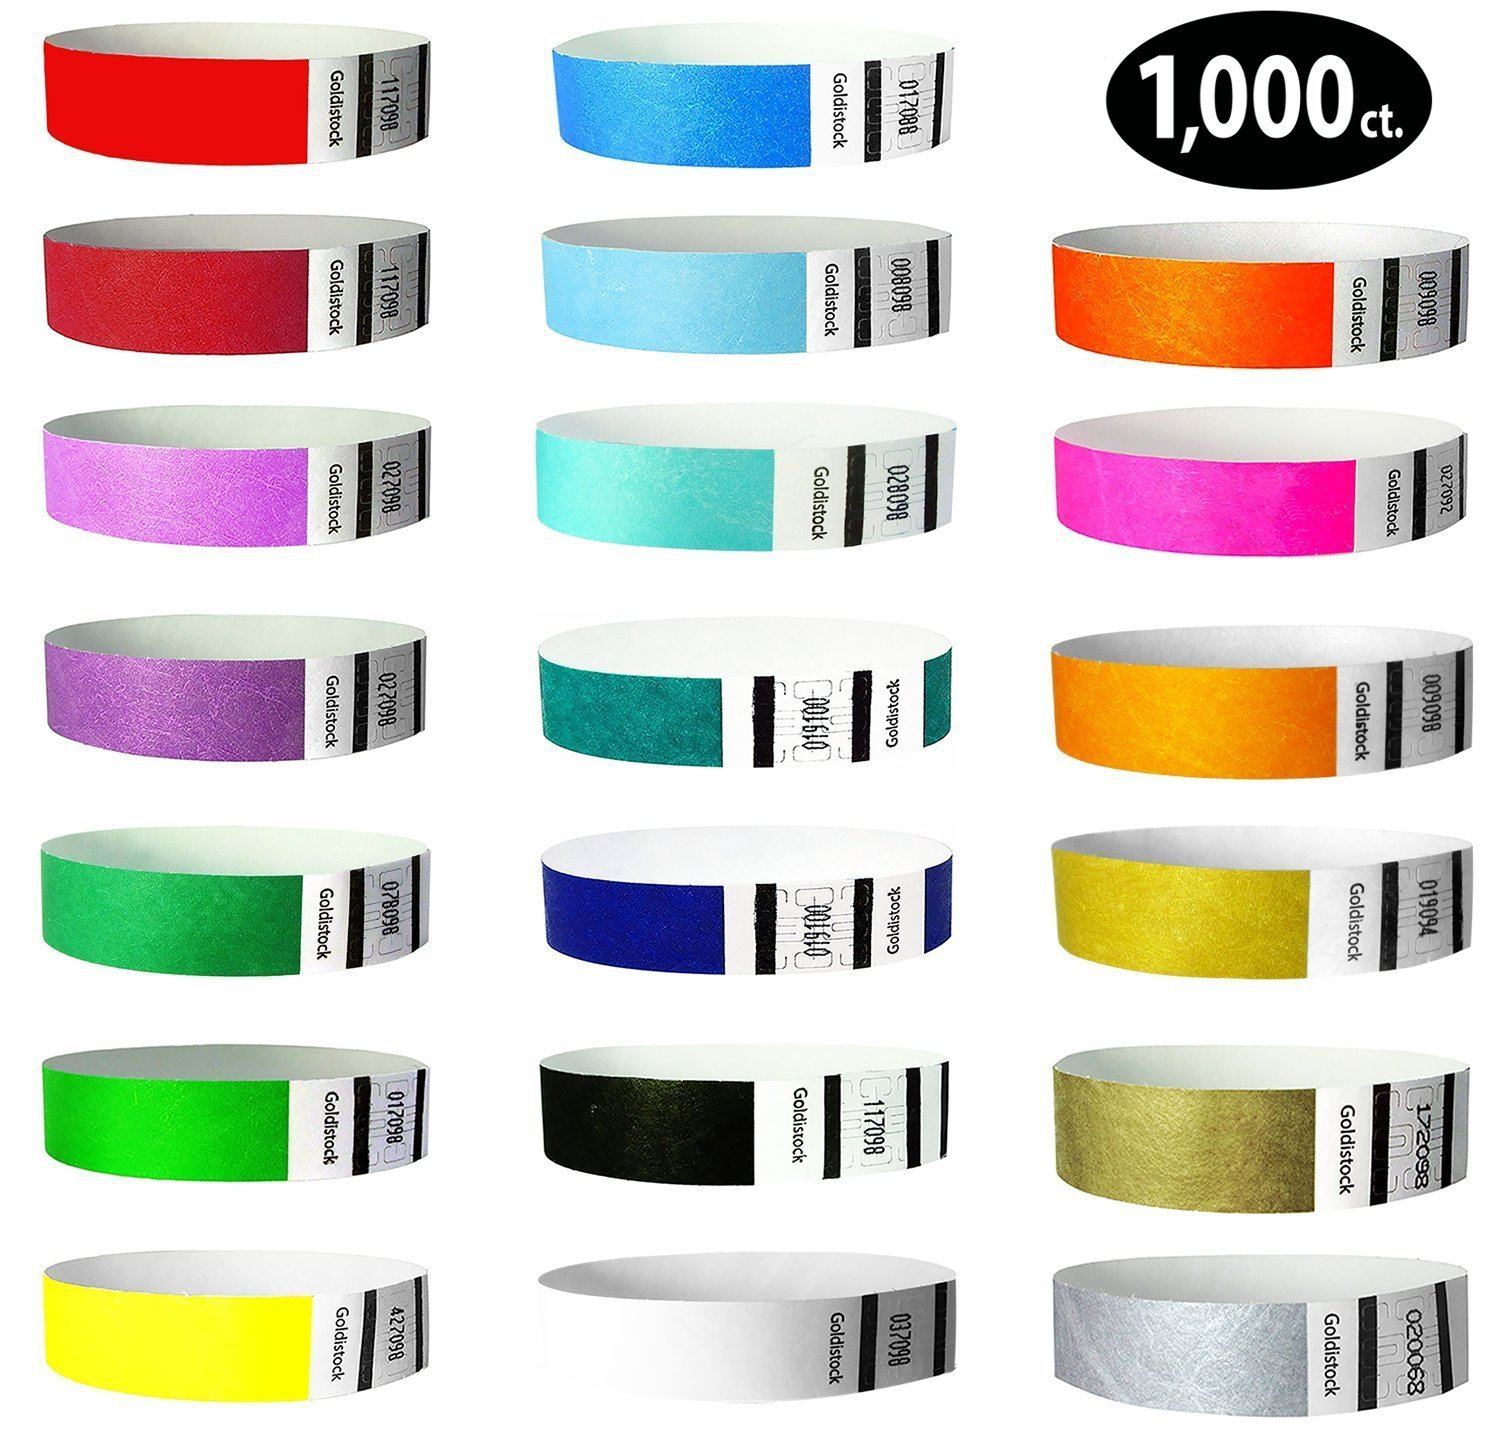 Tyvek Wristbands - Goldistock''Top 20'' 1,000 Ct. Variety Pack- ¾'' Arm Bands - 20 Colors:Green, Blue, Red, Yellow, Orange &15 More - Paper-Like Party Armbands - Wrist Bands for Upgrading Your Event by Goldistock